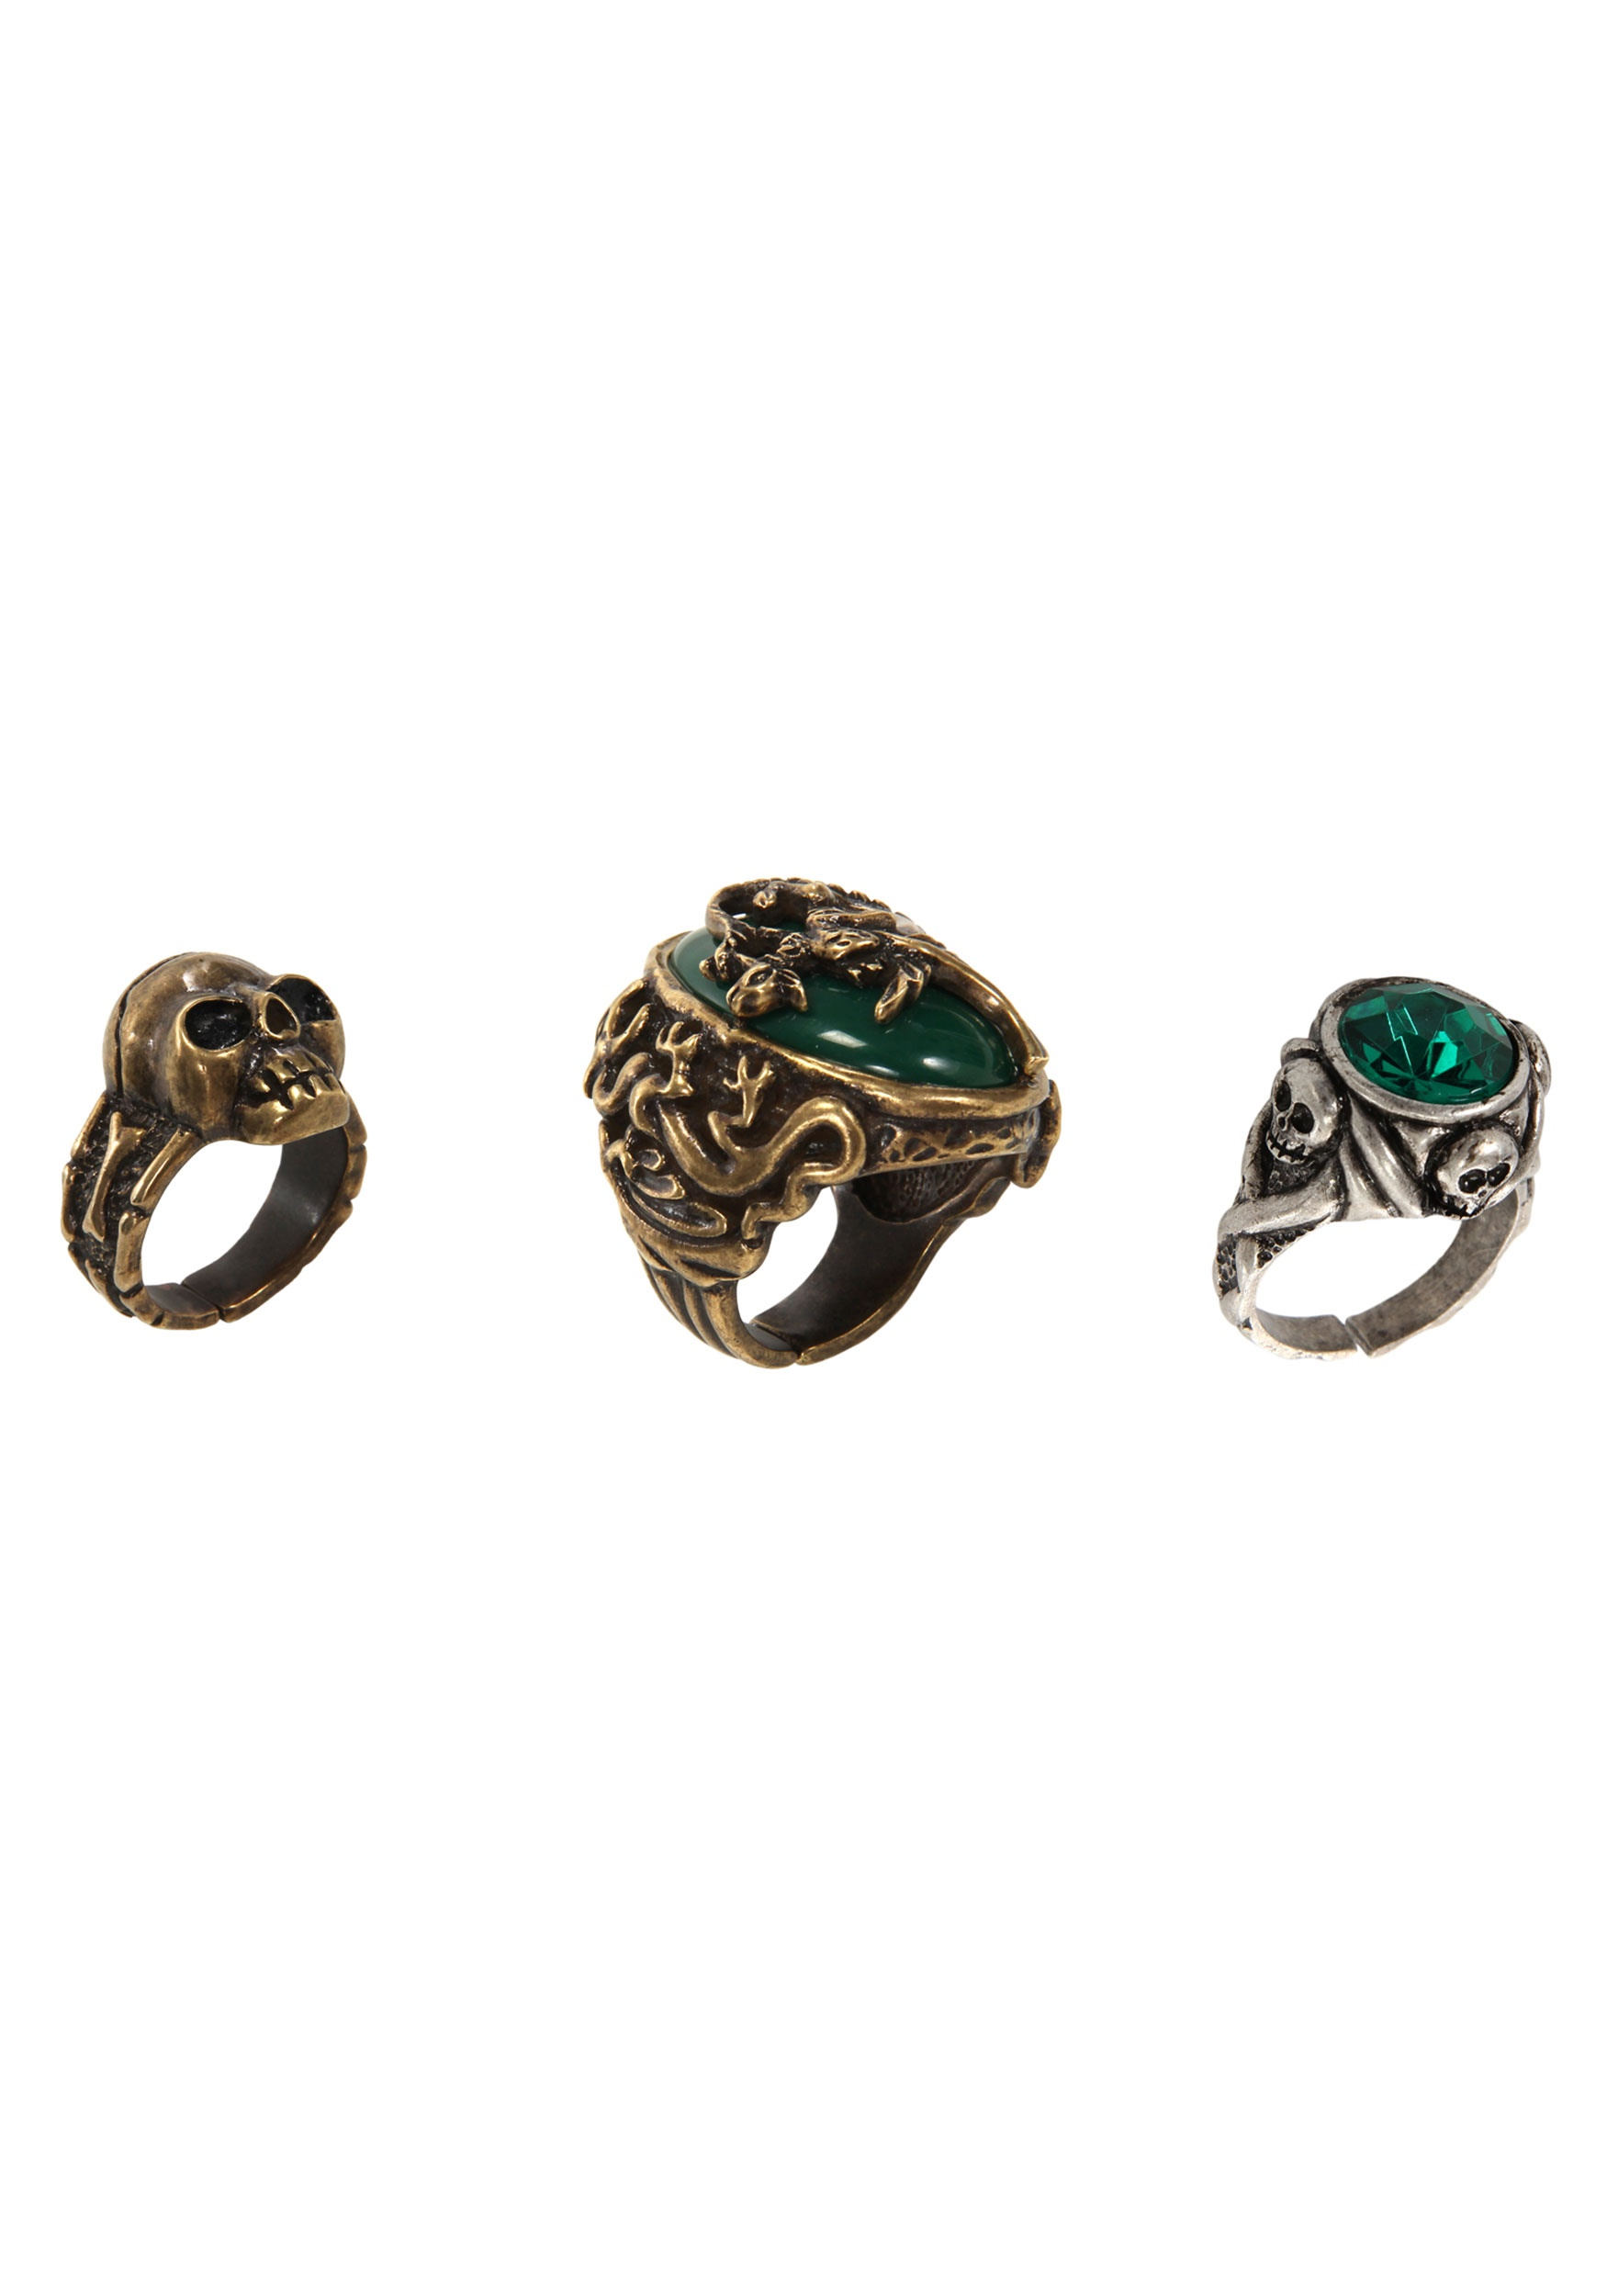 Jack Sparrow Ring Set